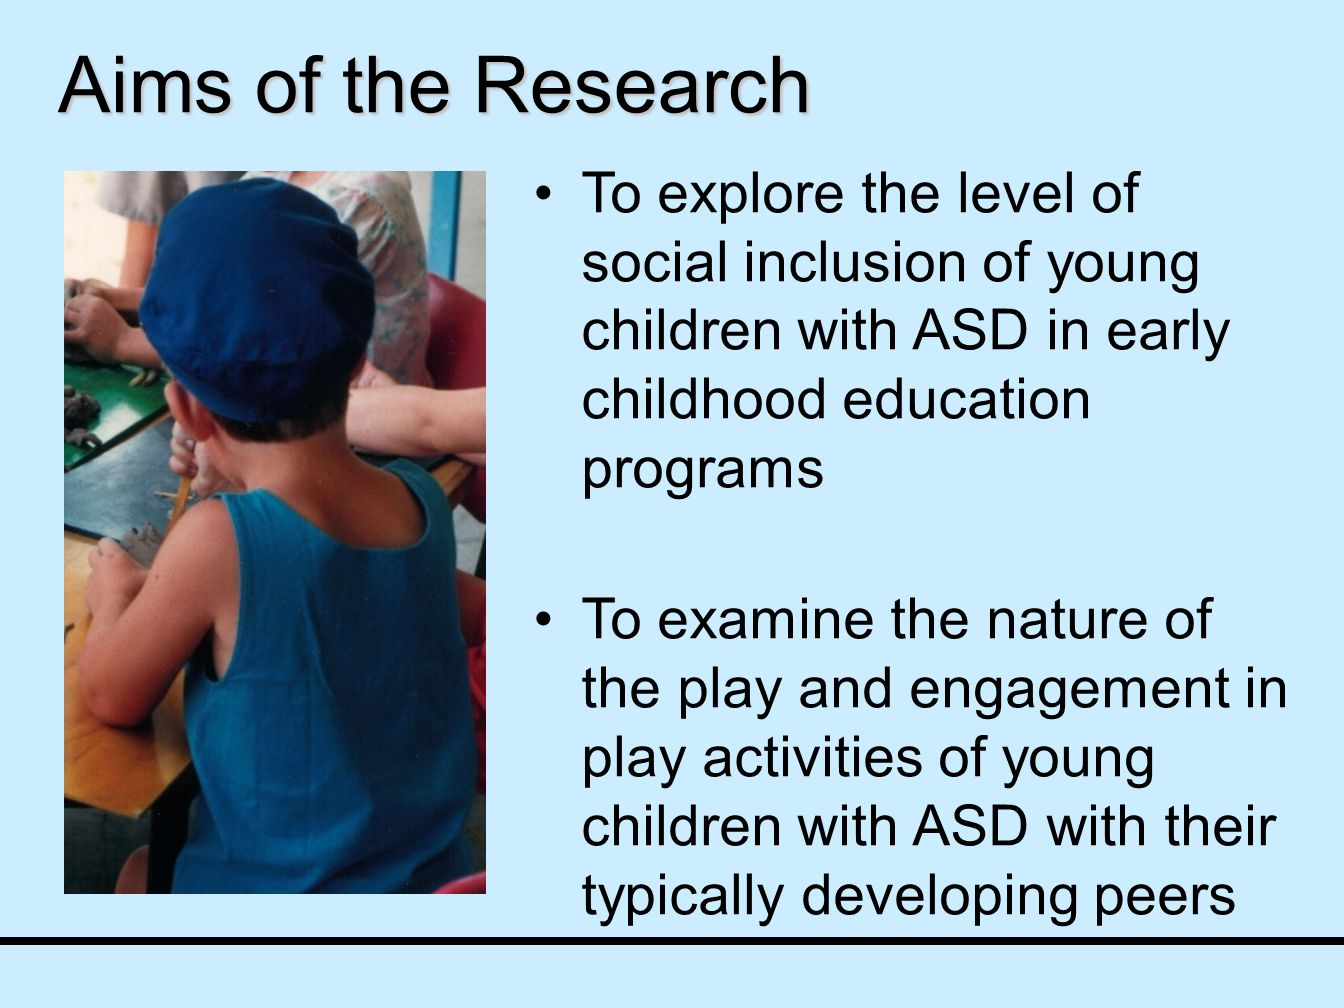 To explore the level of social inclusion of young children with ASD in early childhood education programs To examine the nature of the play and engagement in play activities of young children with ASD with their typically developing peers Aims of the Research